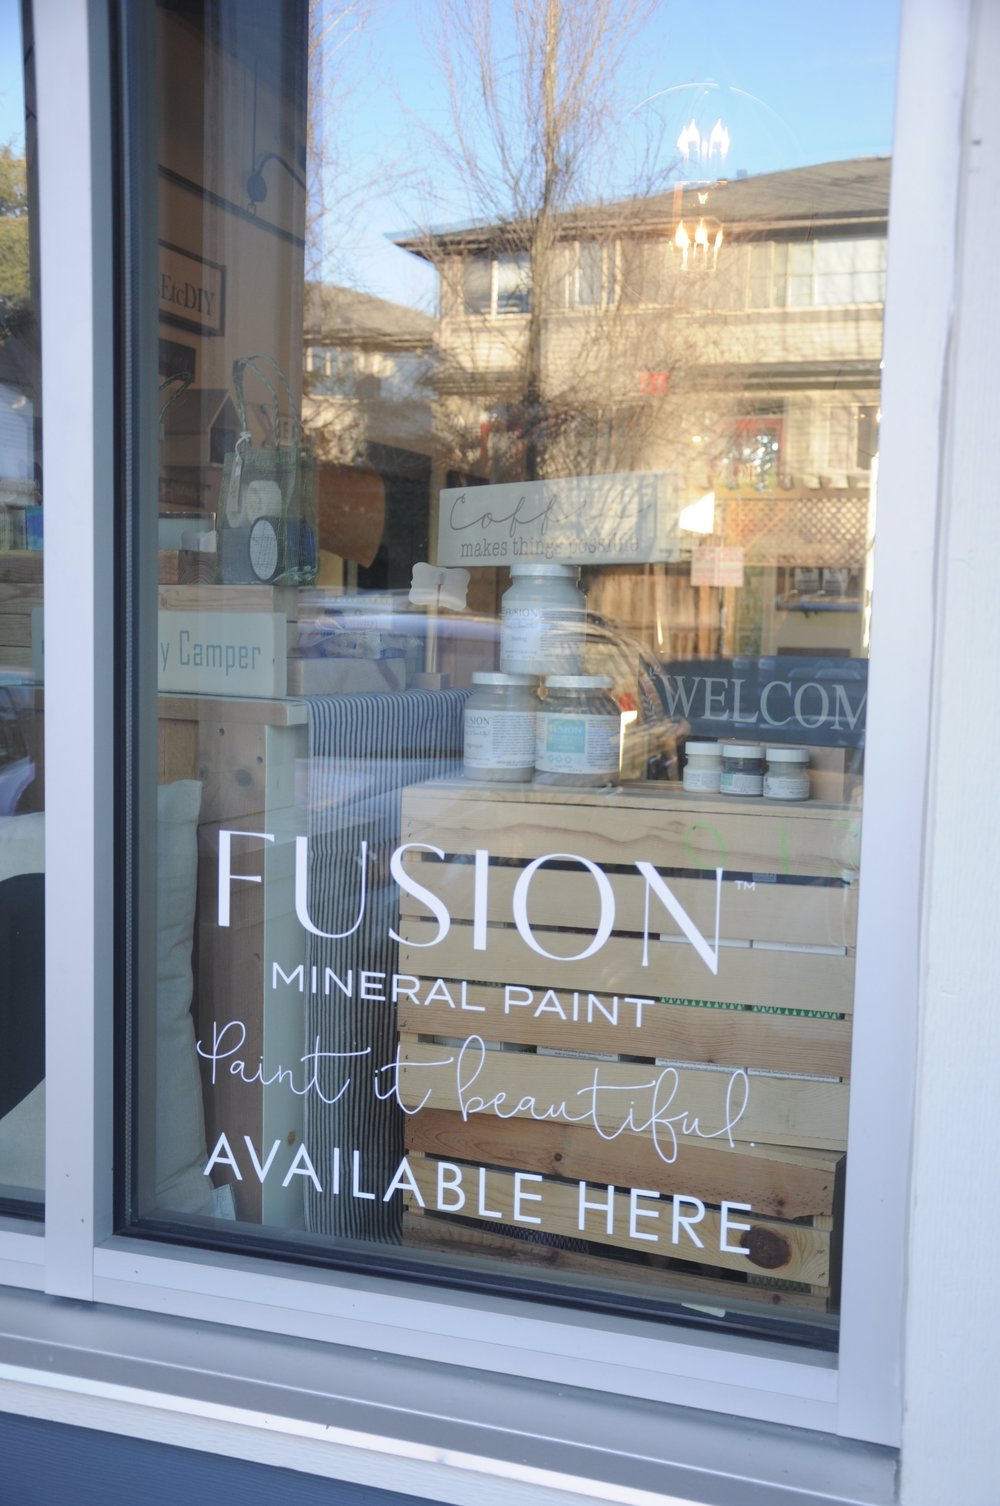 Fusion Mineral Paint sold online at HomeworksEtc.ca